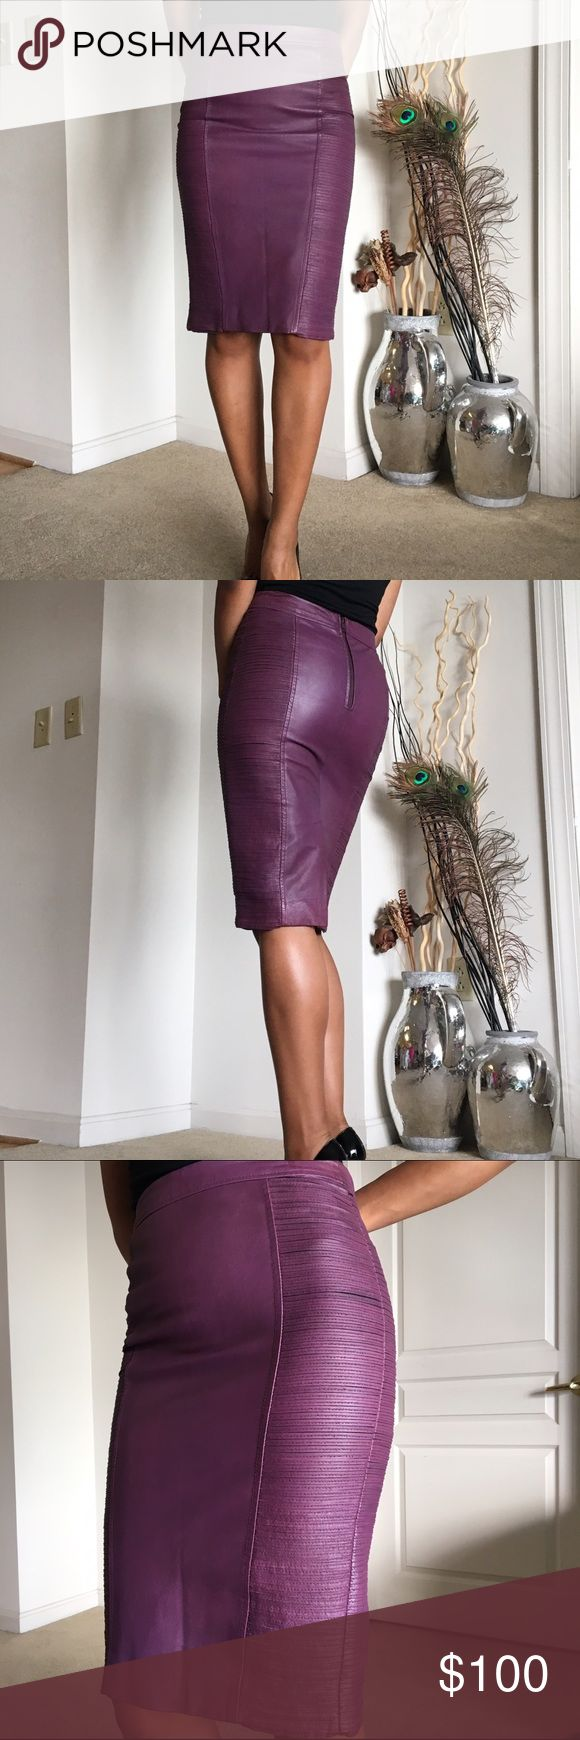 Warehouse purple leather pencil skirt REAL leather, side mini panel detail, back slit and back zip. I just had the leather conditioned, line in front is from being folded in closet. Really soft and I would keep it but it's a tiny bit too tight. Tag says UK 8. Warehouse brand purchased from ASOS Asos Skirts Pencil